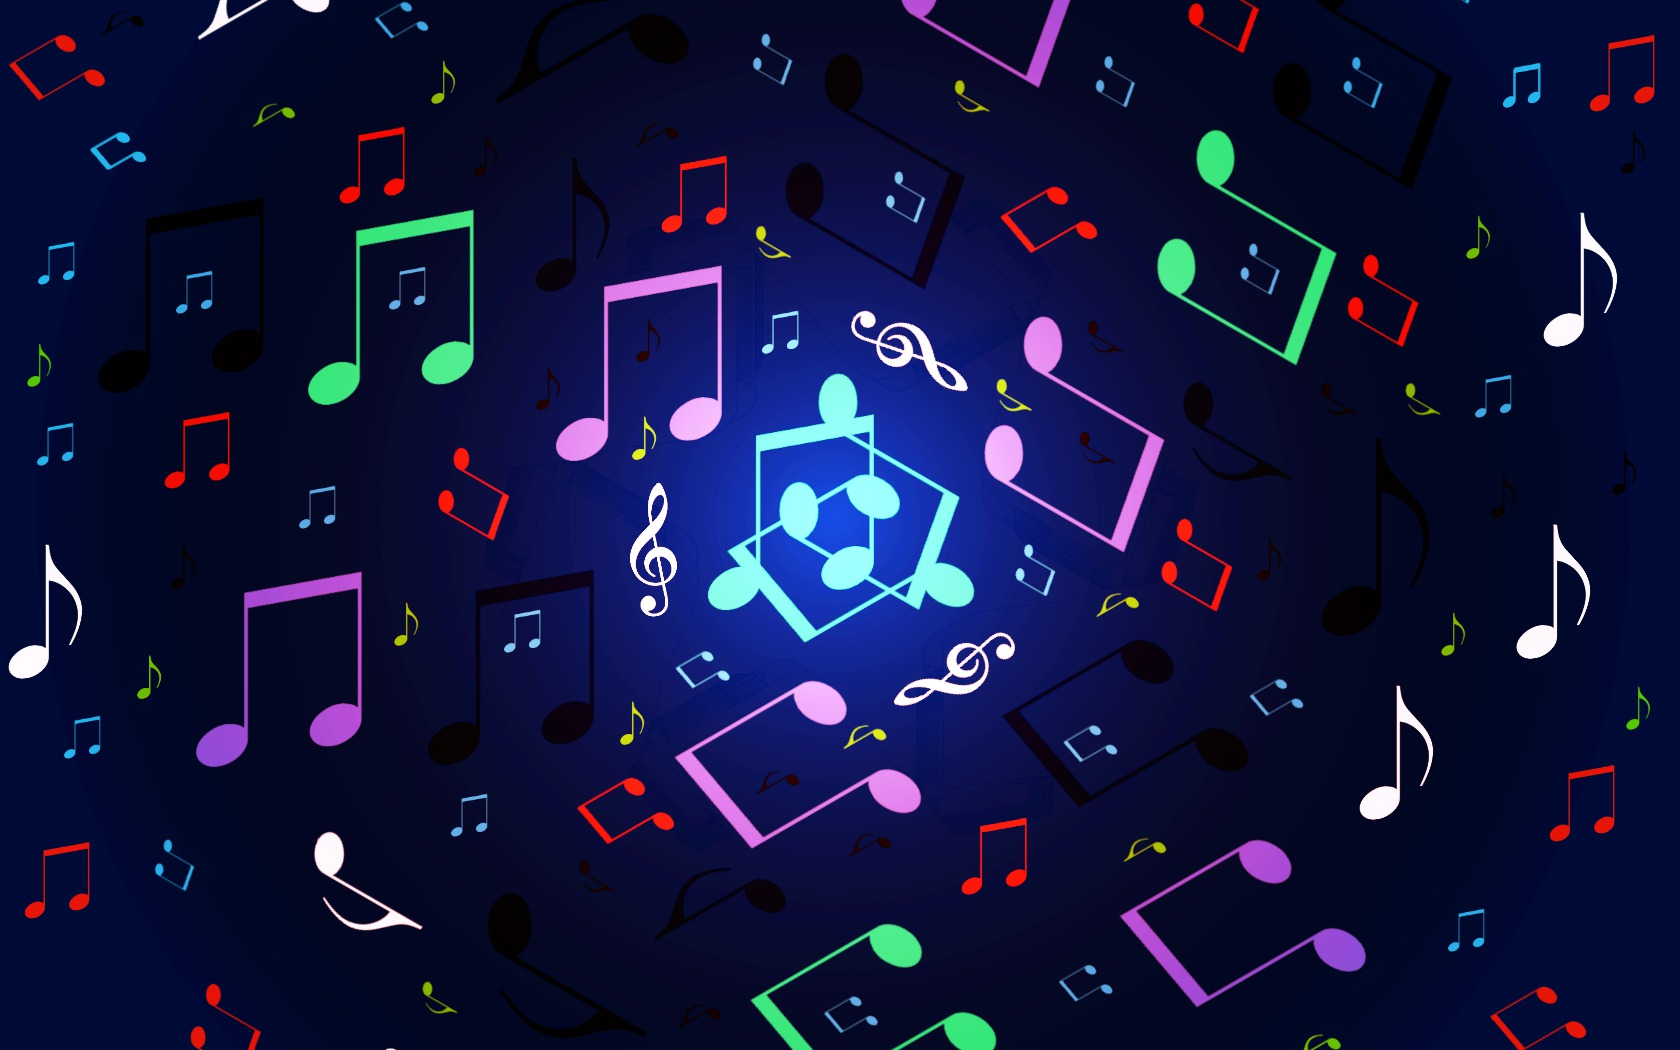 Music Notes Wallpaper 10195 Hd Wallpapers in Music   Imagescicom 1680x1050